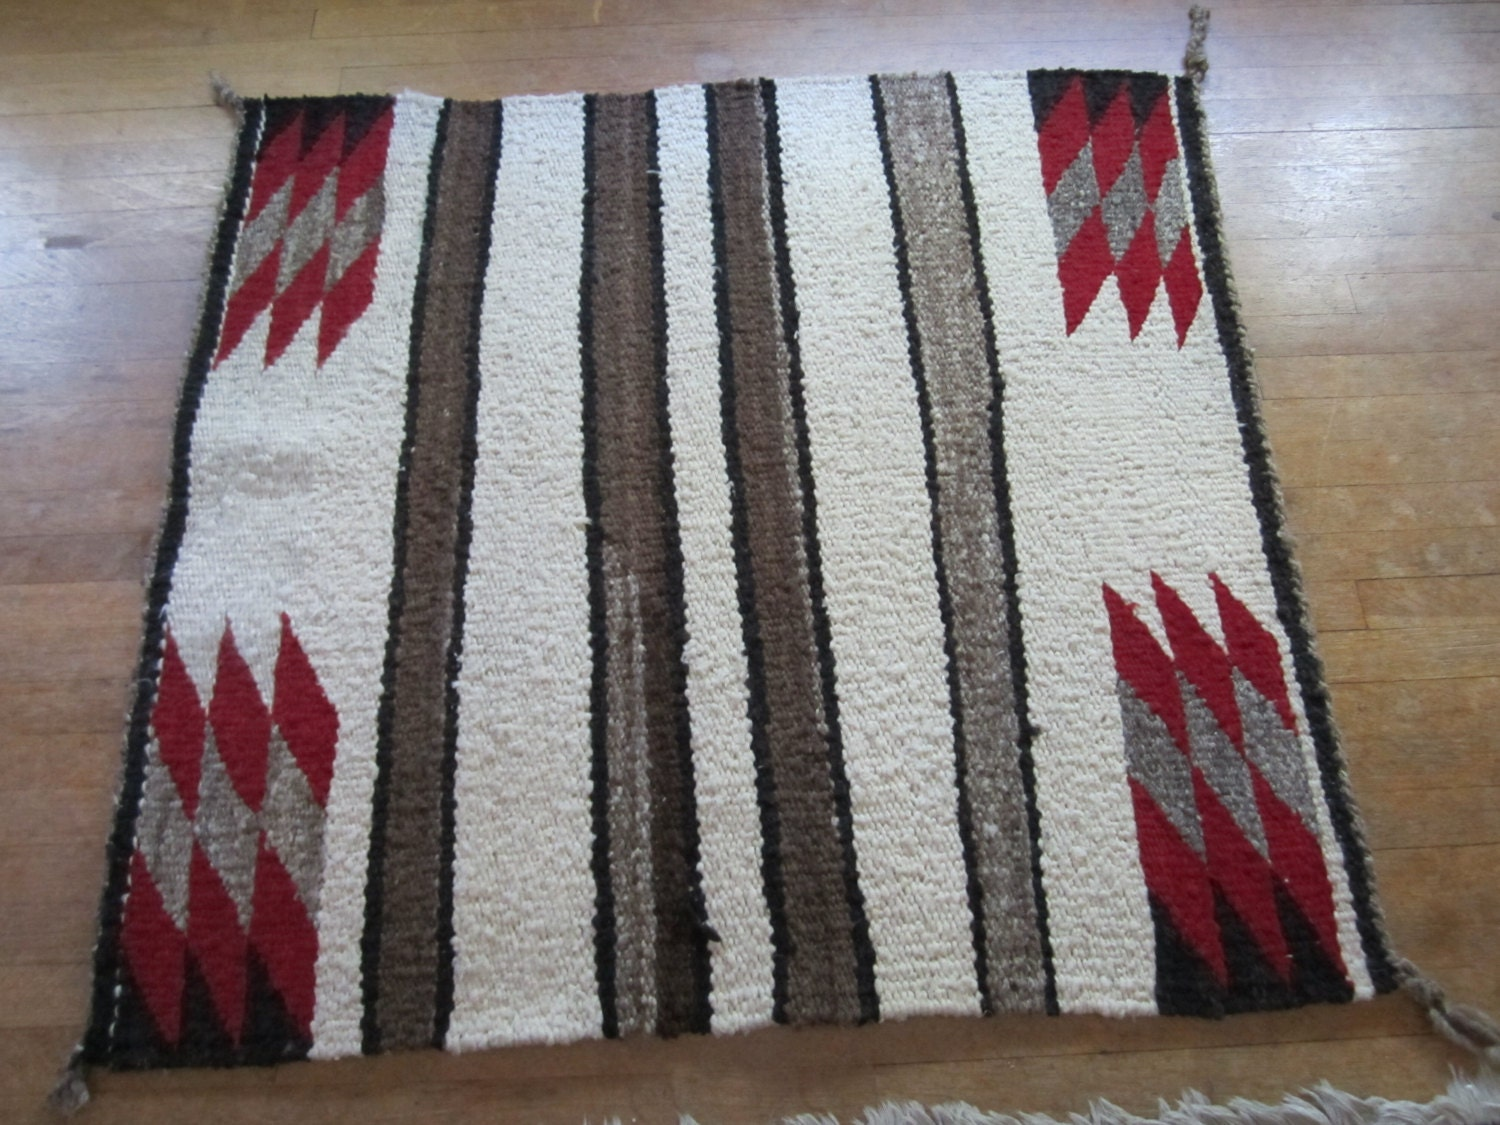 American Indian Blankets&American Indian Blankets&Rugs: Early Fur TradeAmerican Indian Blankets&American Indian Blankets&Rugs: Early Fur TradeBlankets;American Indian Blankets&American Indian Blankets&Rugs: Early Fur TradeAmerican Indian Blankets&American Indian Blankets&Rugs: Early Fur TradeBlankets;Navajo& Mexican Designs; Many of these areAmerican Indian Blankets&American Indian Blankets&Rugs: Early Fur TradeAmerican Indian Blankets&American Indian Blankets&Rugs: Early Fur TradeBlankets;American Indian Blankets&American Indian Blankets&Rugs: Early Fur TradeAmerican Indian Blankets&American Indian Blankets&Rugs: Early Fur TradeBlankets;Navajo& Mexican Designs; Many of these areauthenticreproductions of original trade goods which